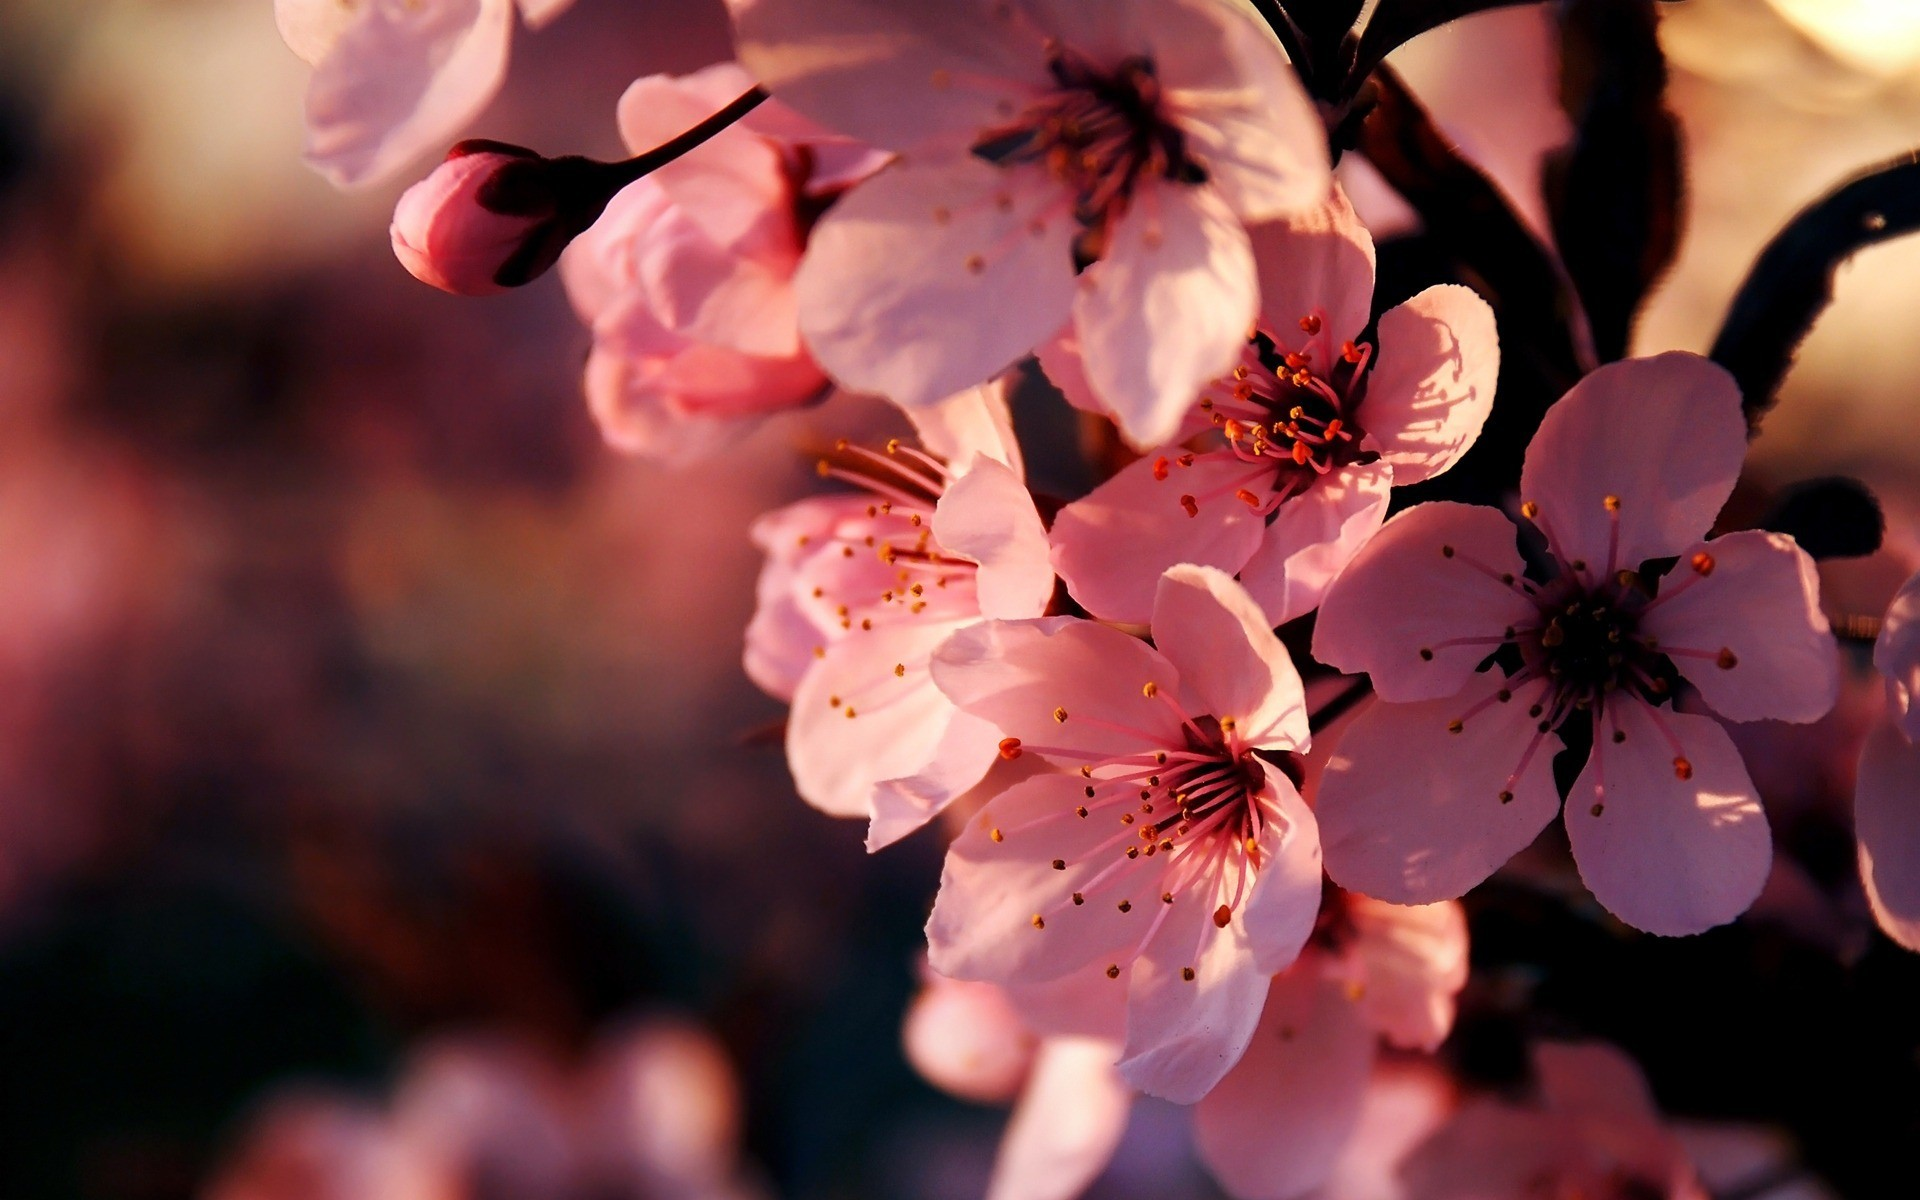 Pretty Flowers Background Wallpaper 2560x1600 23434